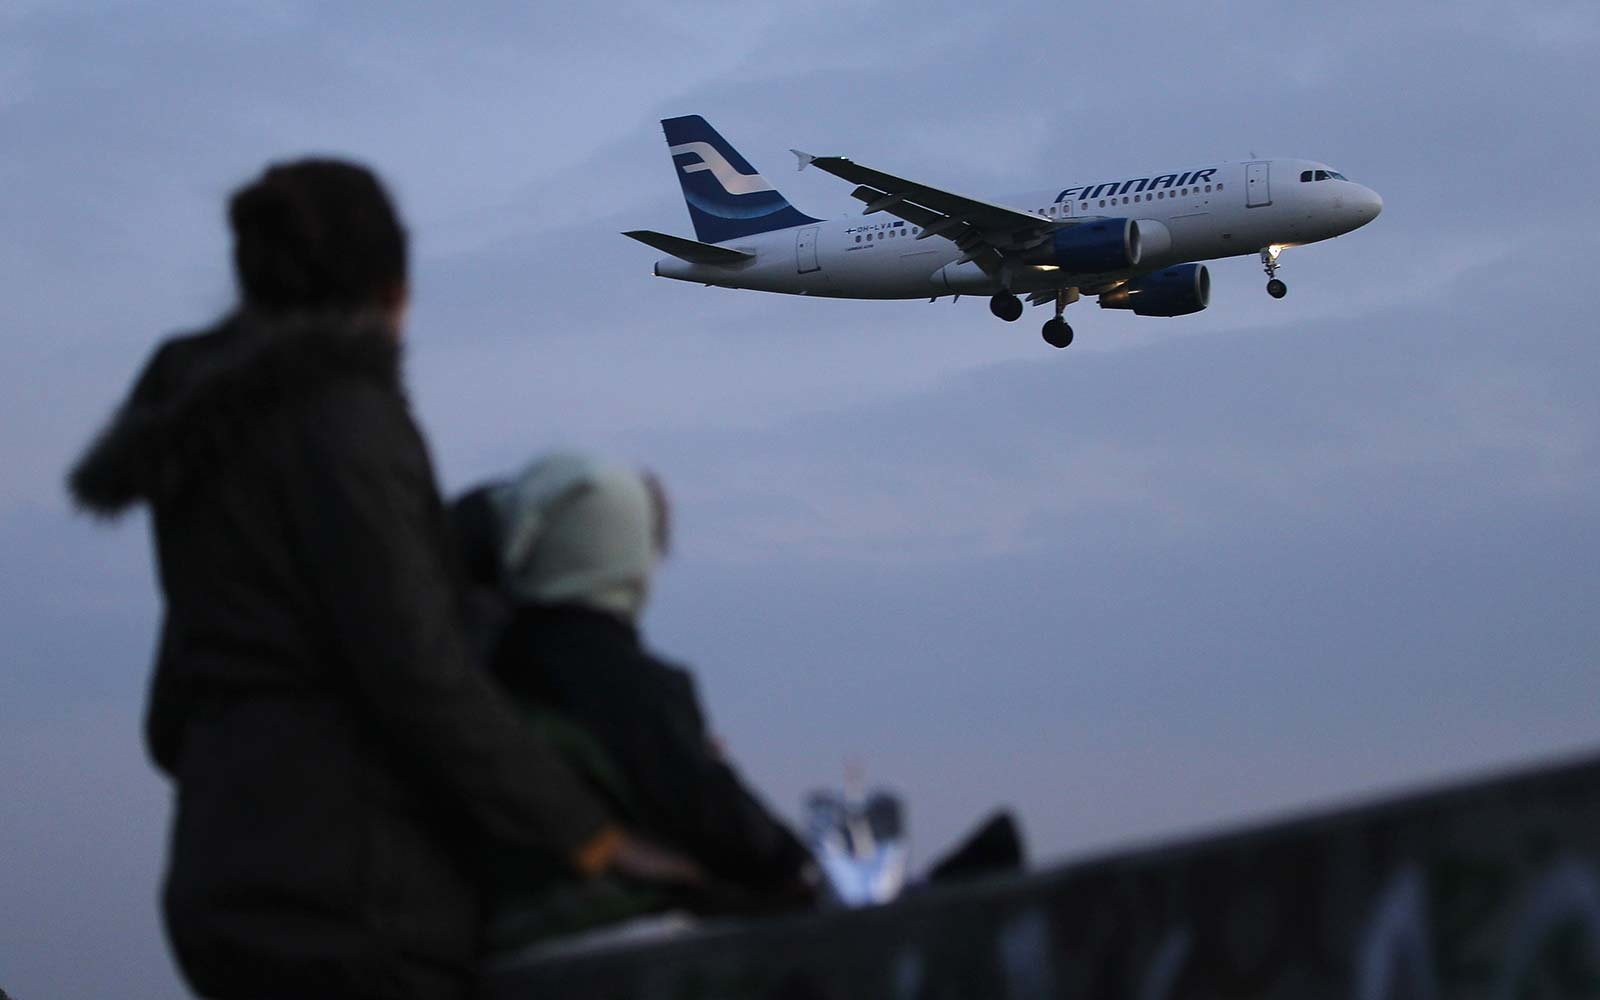 Helsinki Finnair Flight 666 Friday October 13th